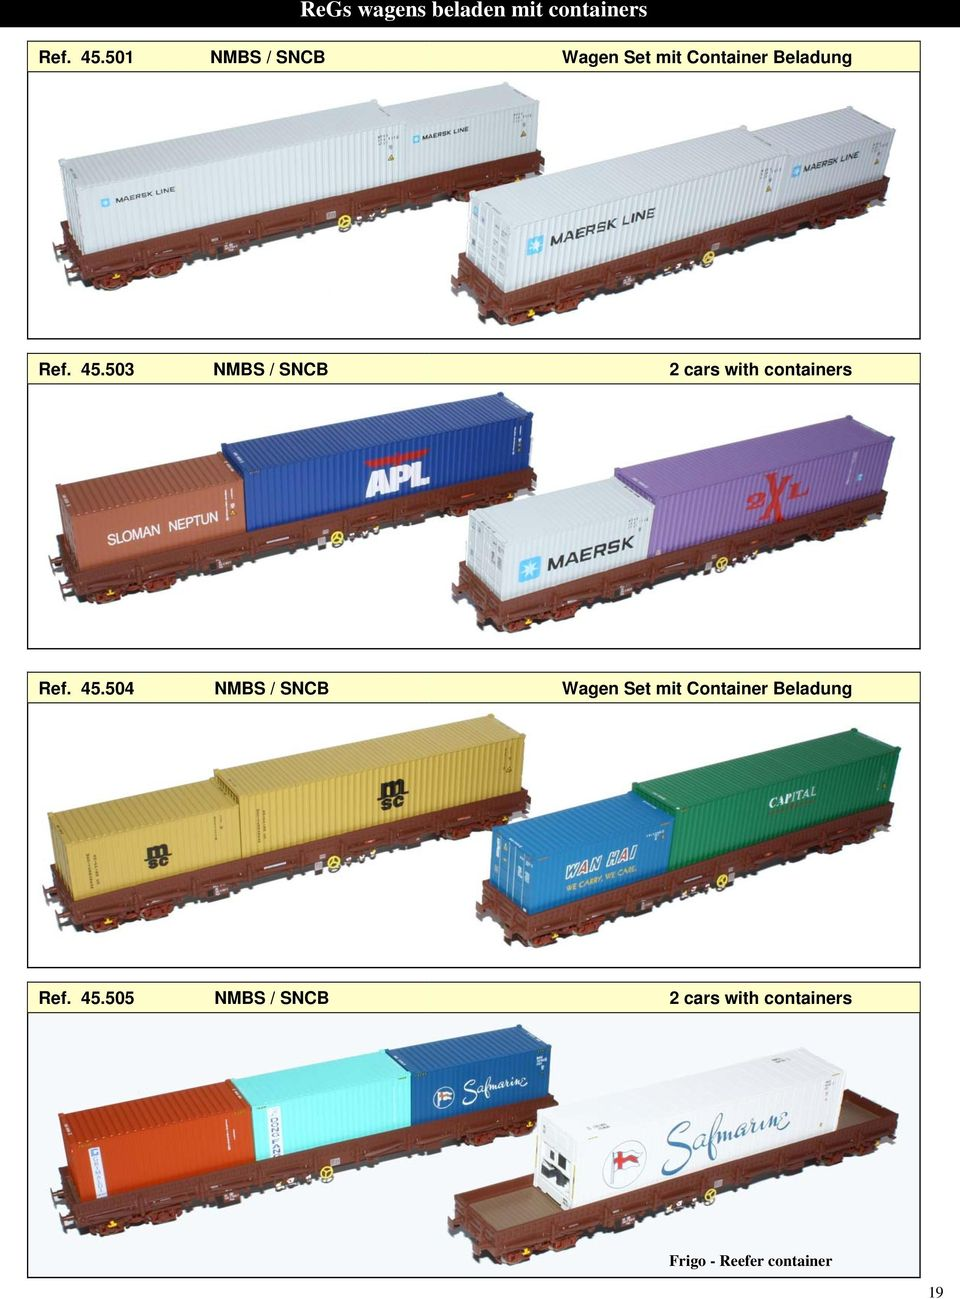 503 NMBS / SNCB 2 cars with containers Ref. 45.